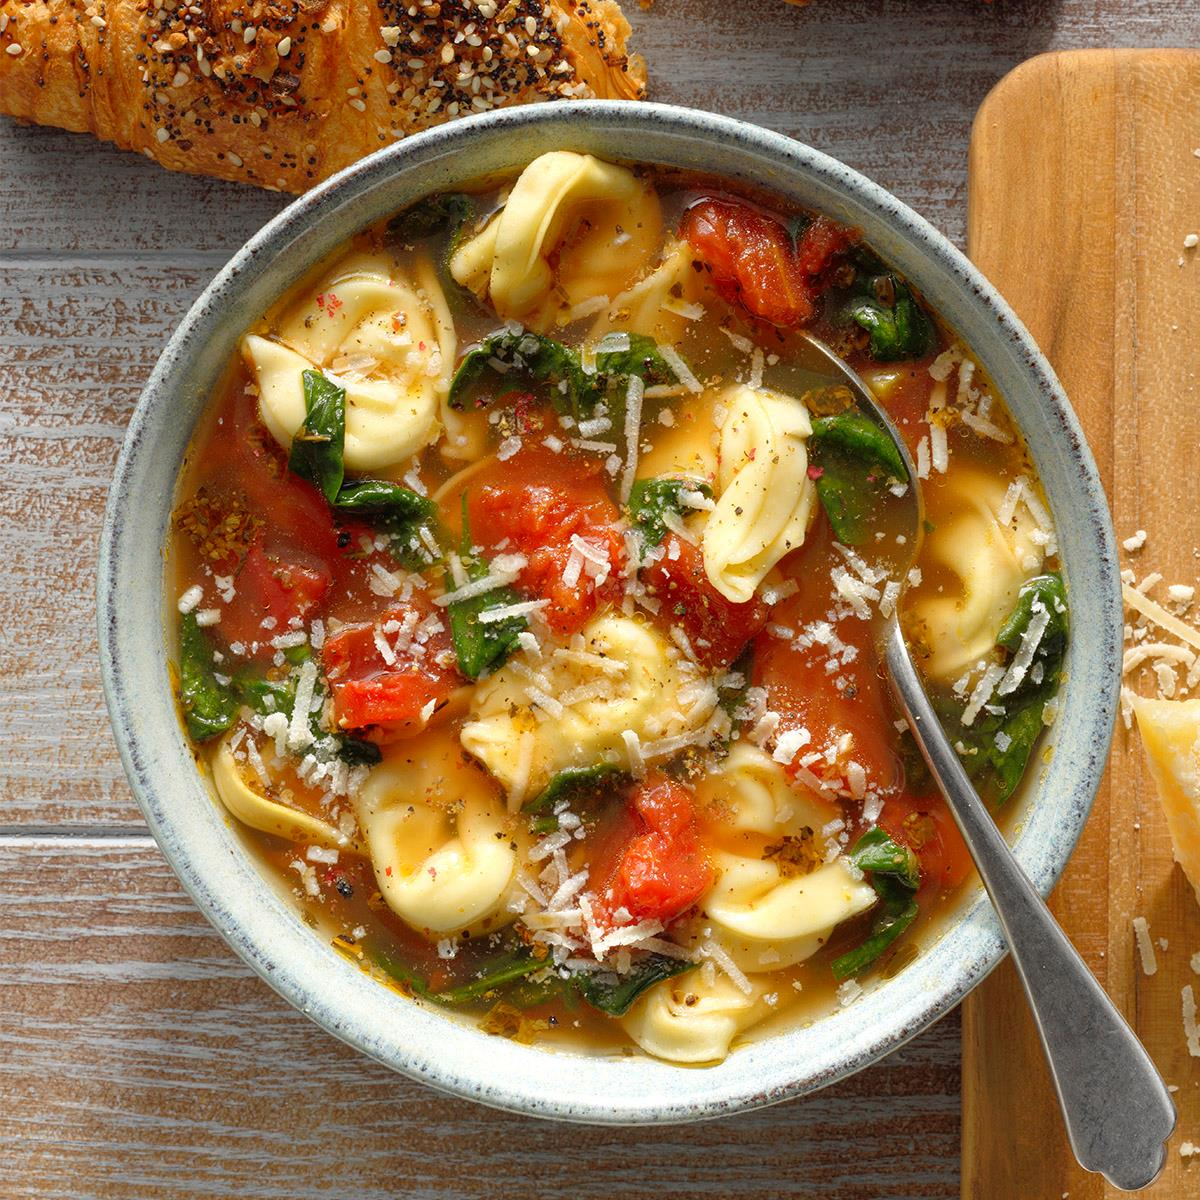 Spinach and Tortellini Soup